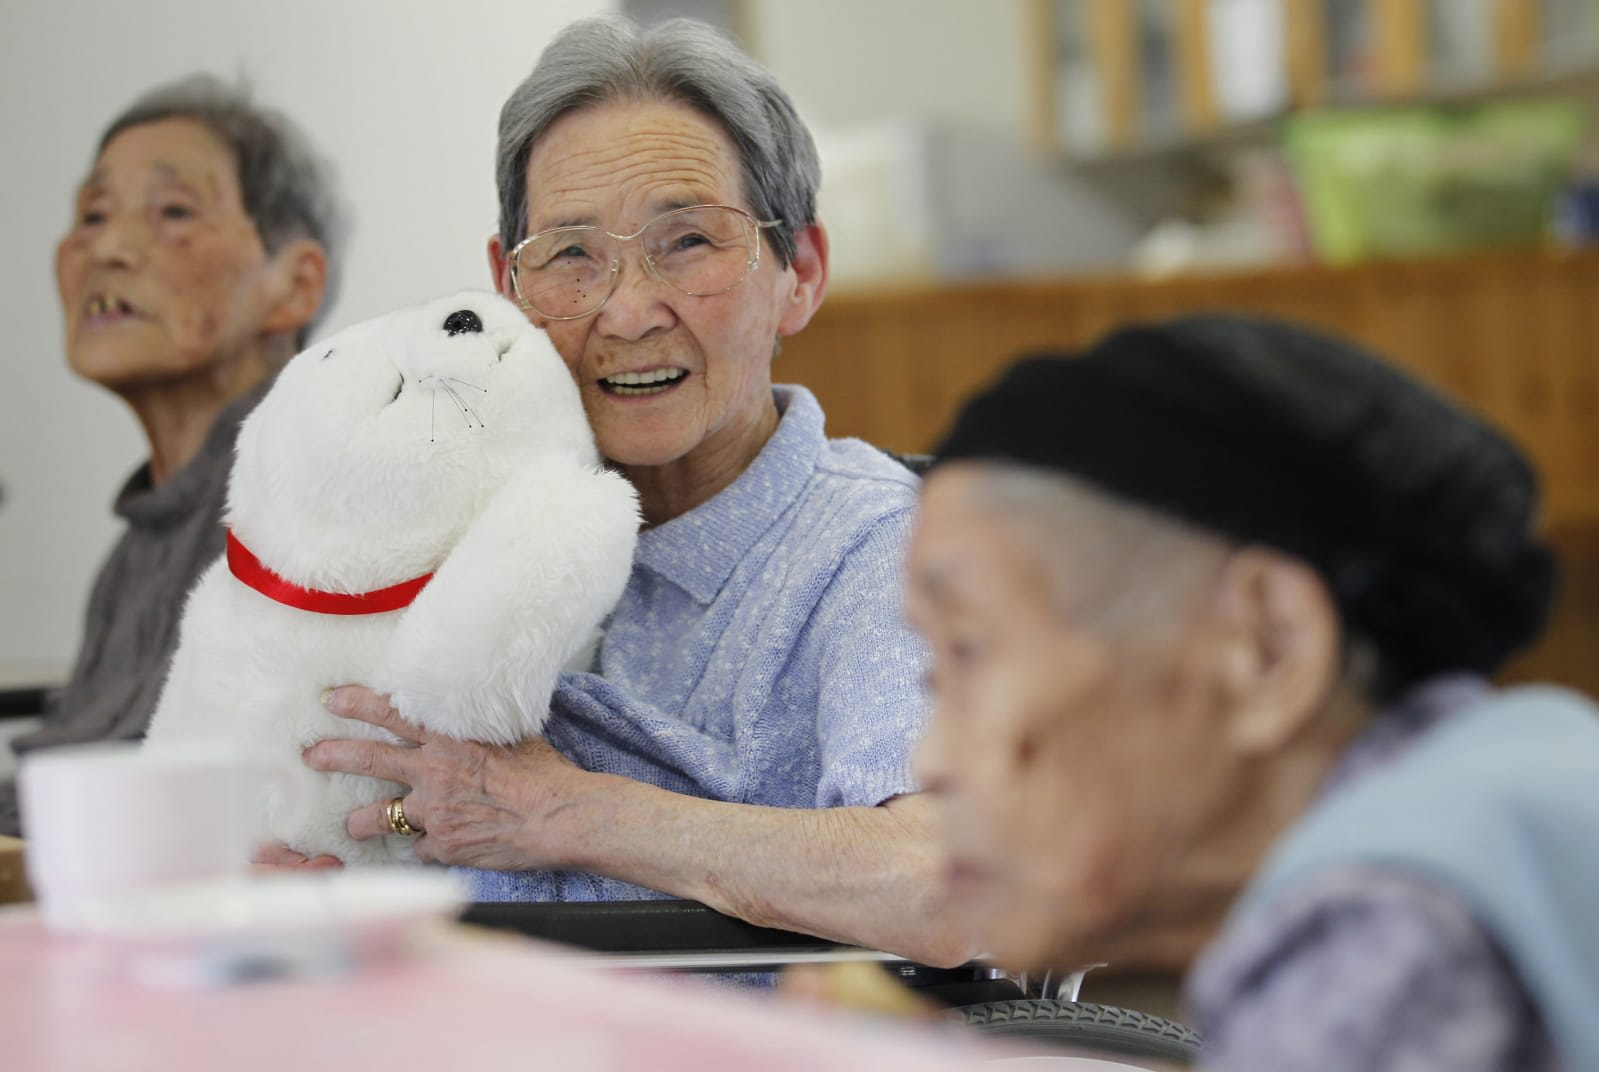 Robot caregivers are saving the elderly from lives of loneliness